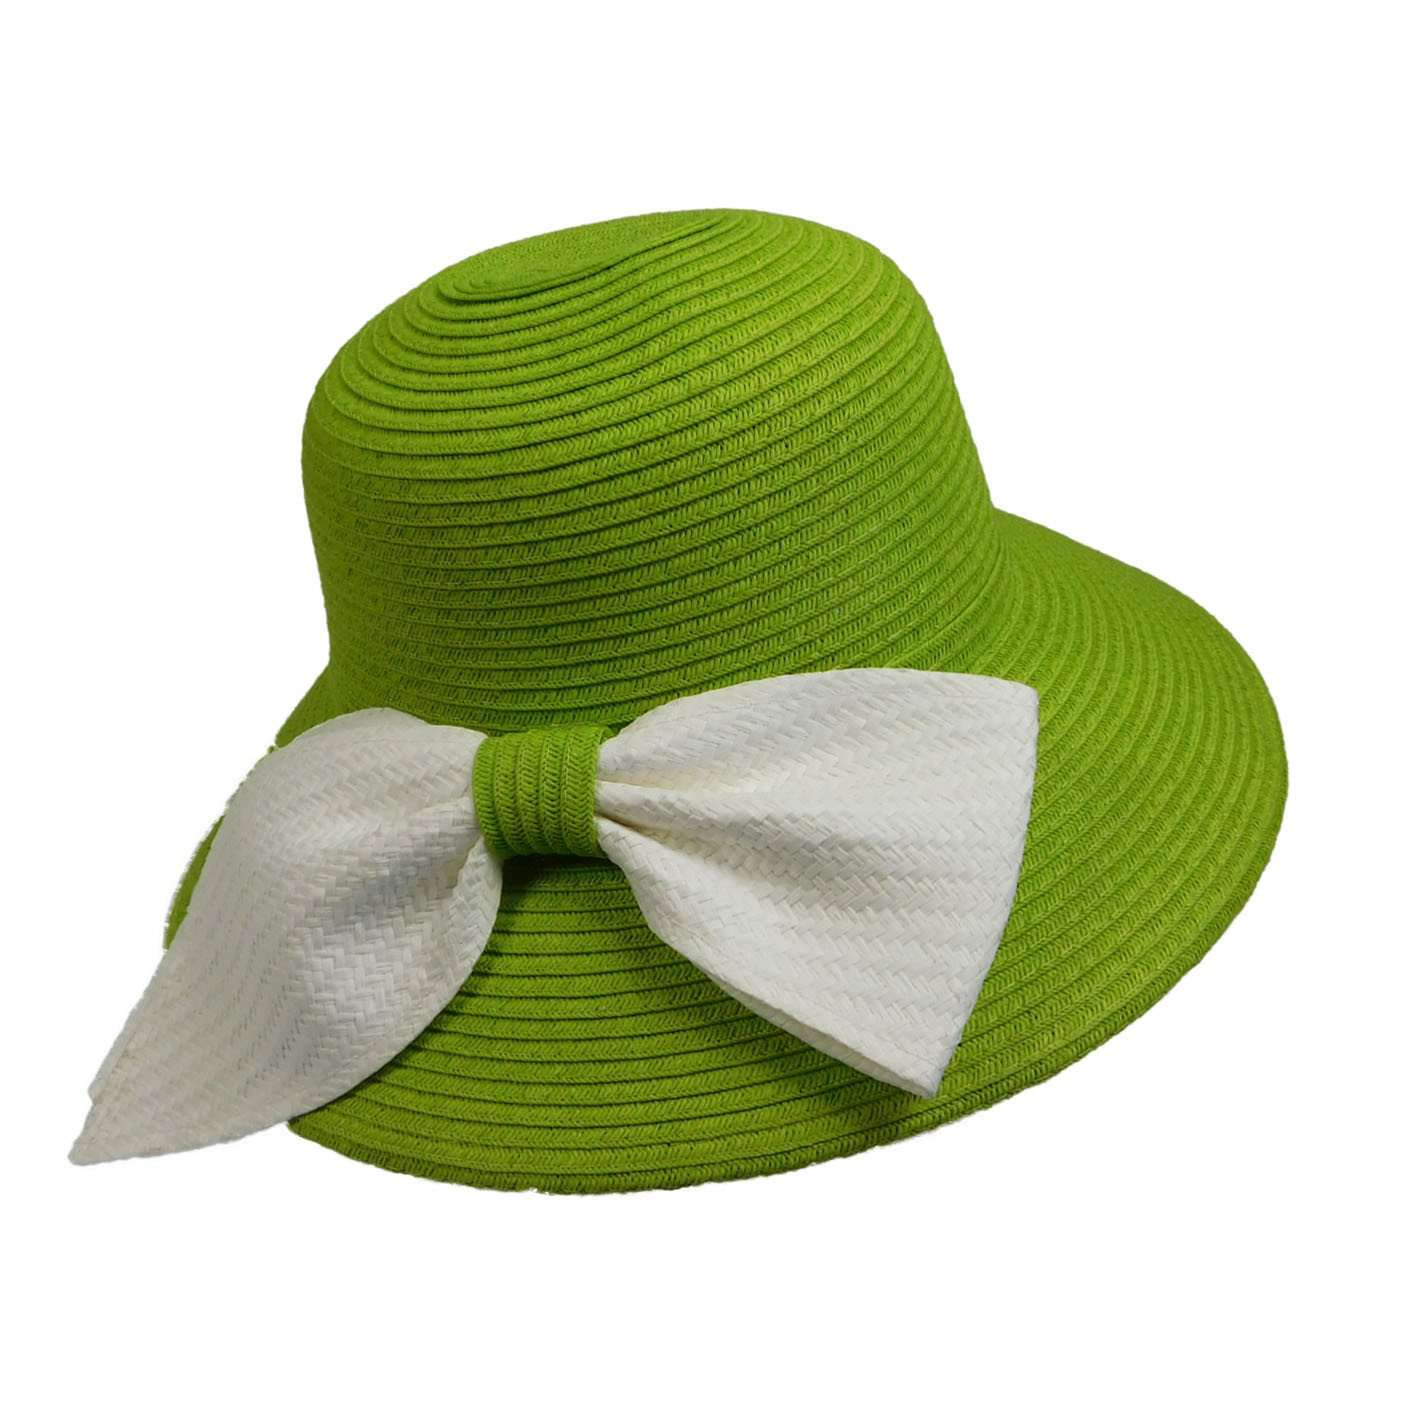 Big Brim Sun Hat with White Bow - SetarTrading Hats